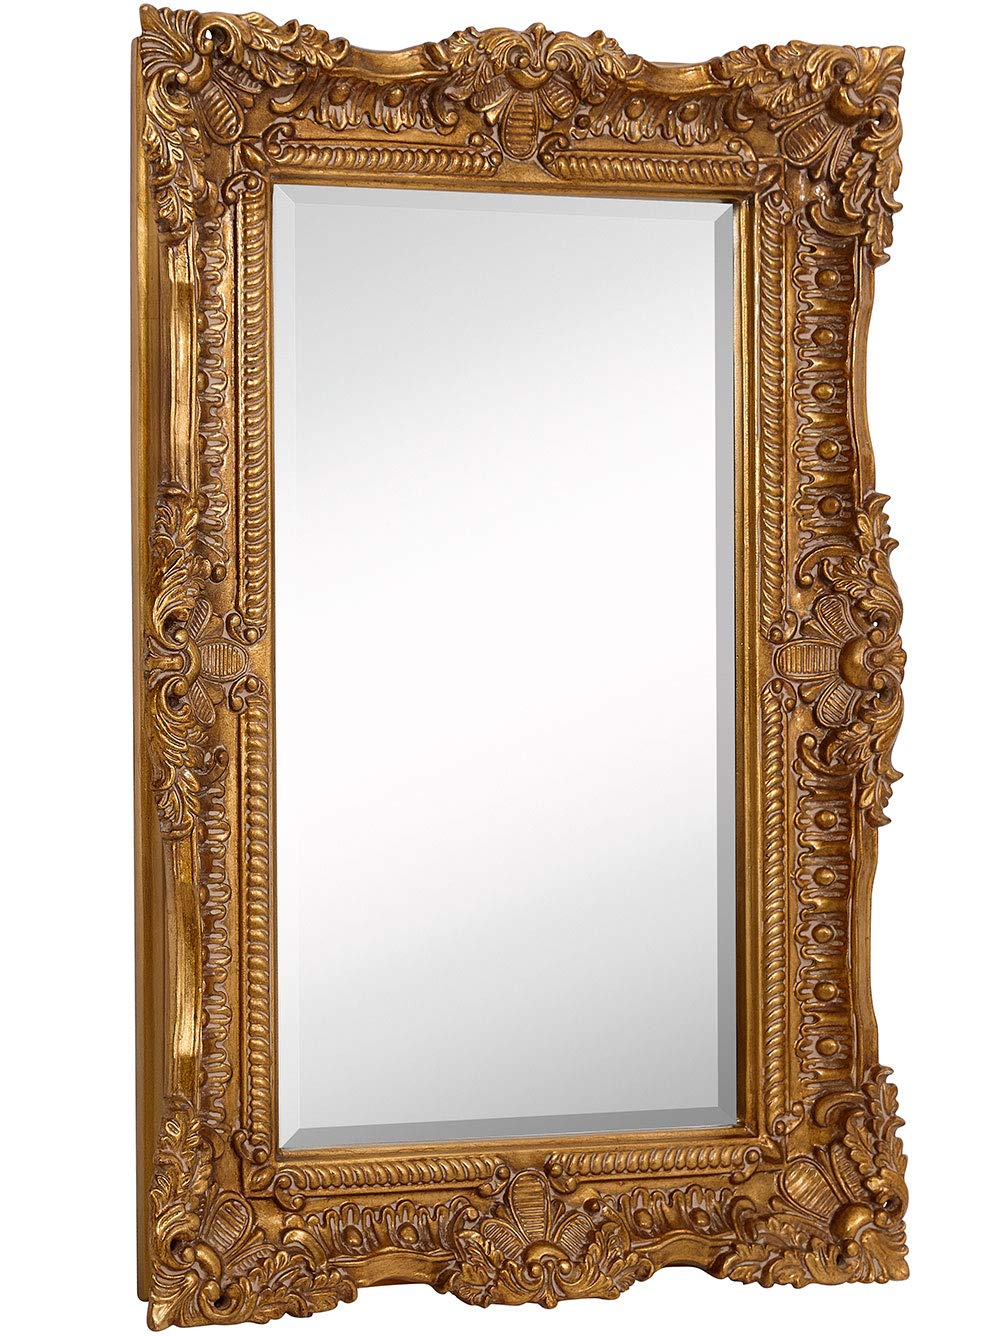 Hamilton Hills Large Ornate Gold Baroque Frame Mirror | Aged Luxury | Elegant Rectangle Wall Piece | Vanity, Bedroom, or Bathroom | Hangs Horizontal or Vertical | 100% (24'' x 36'') by Hamilton Hills